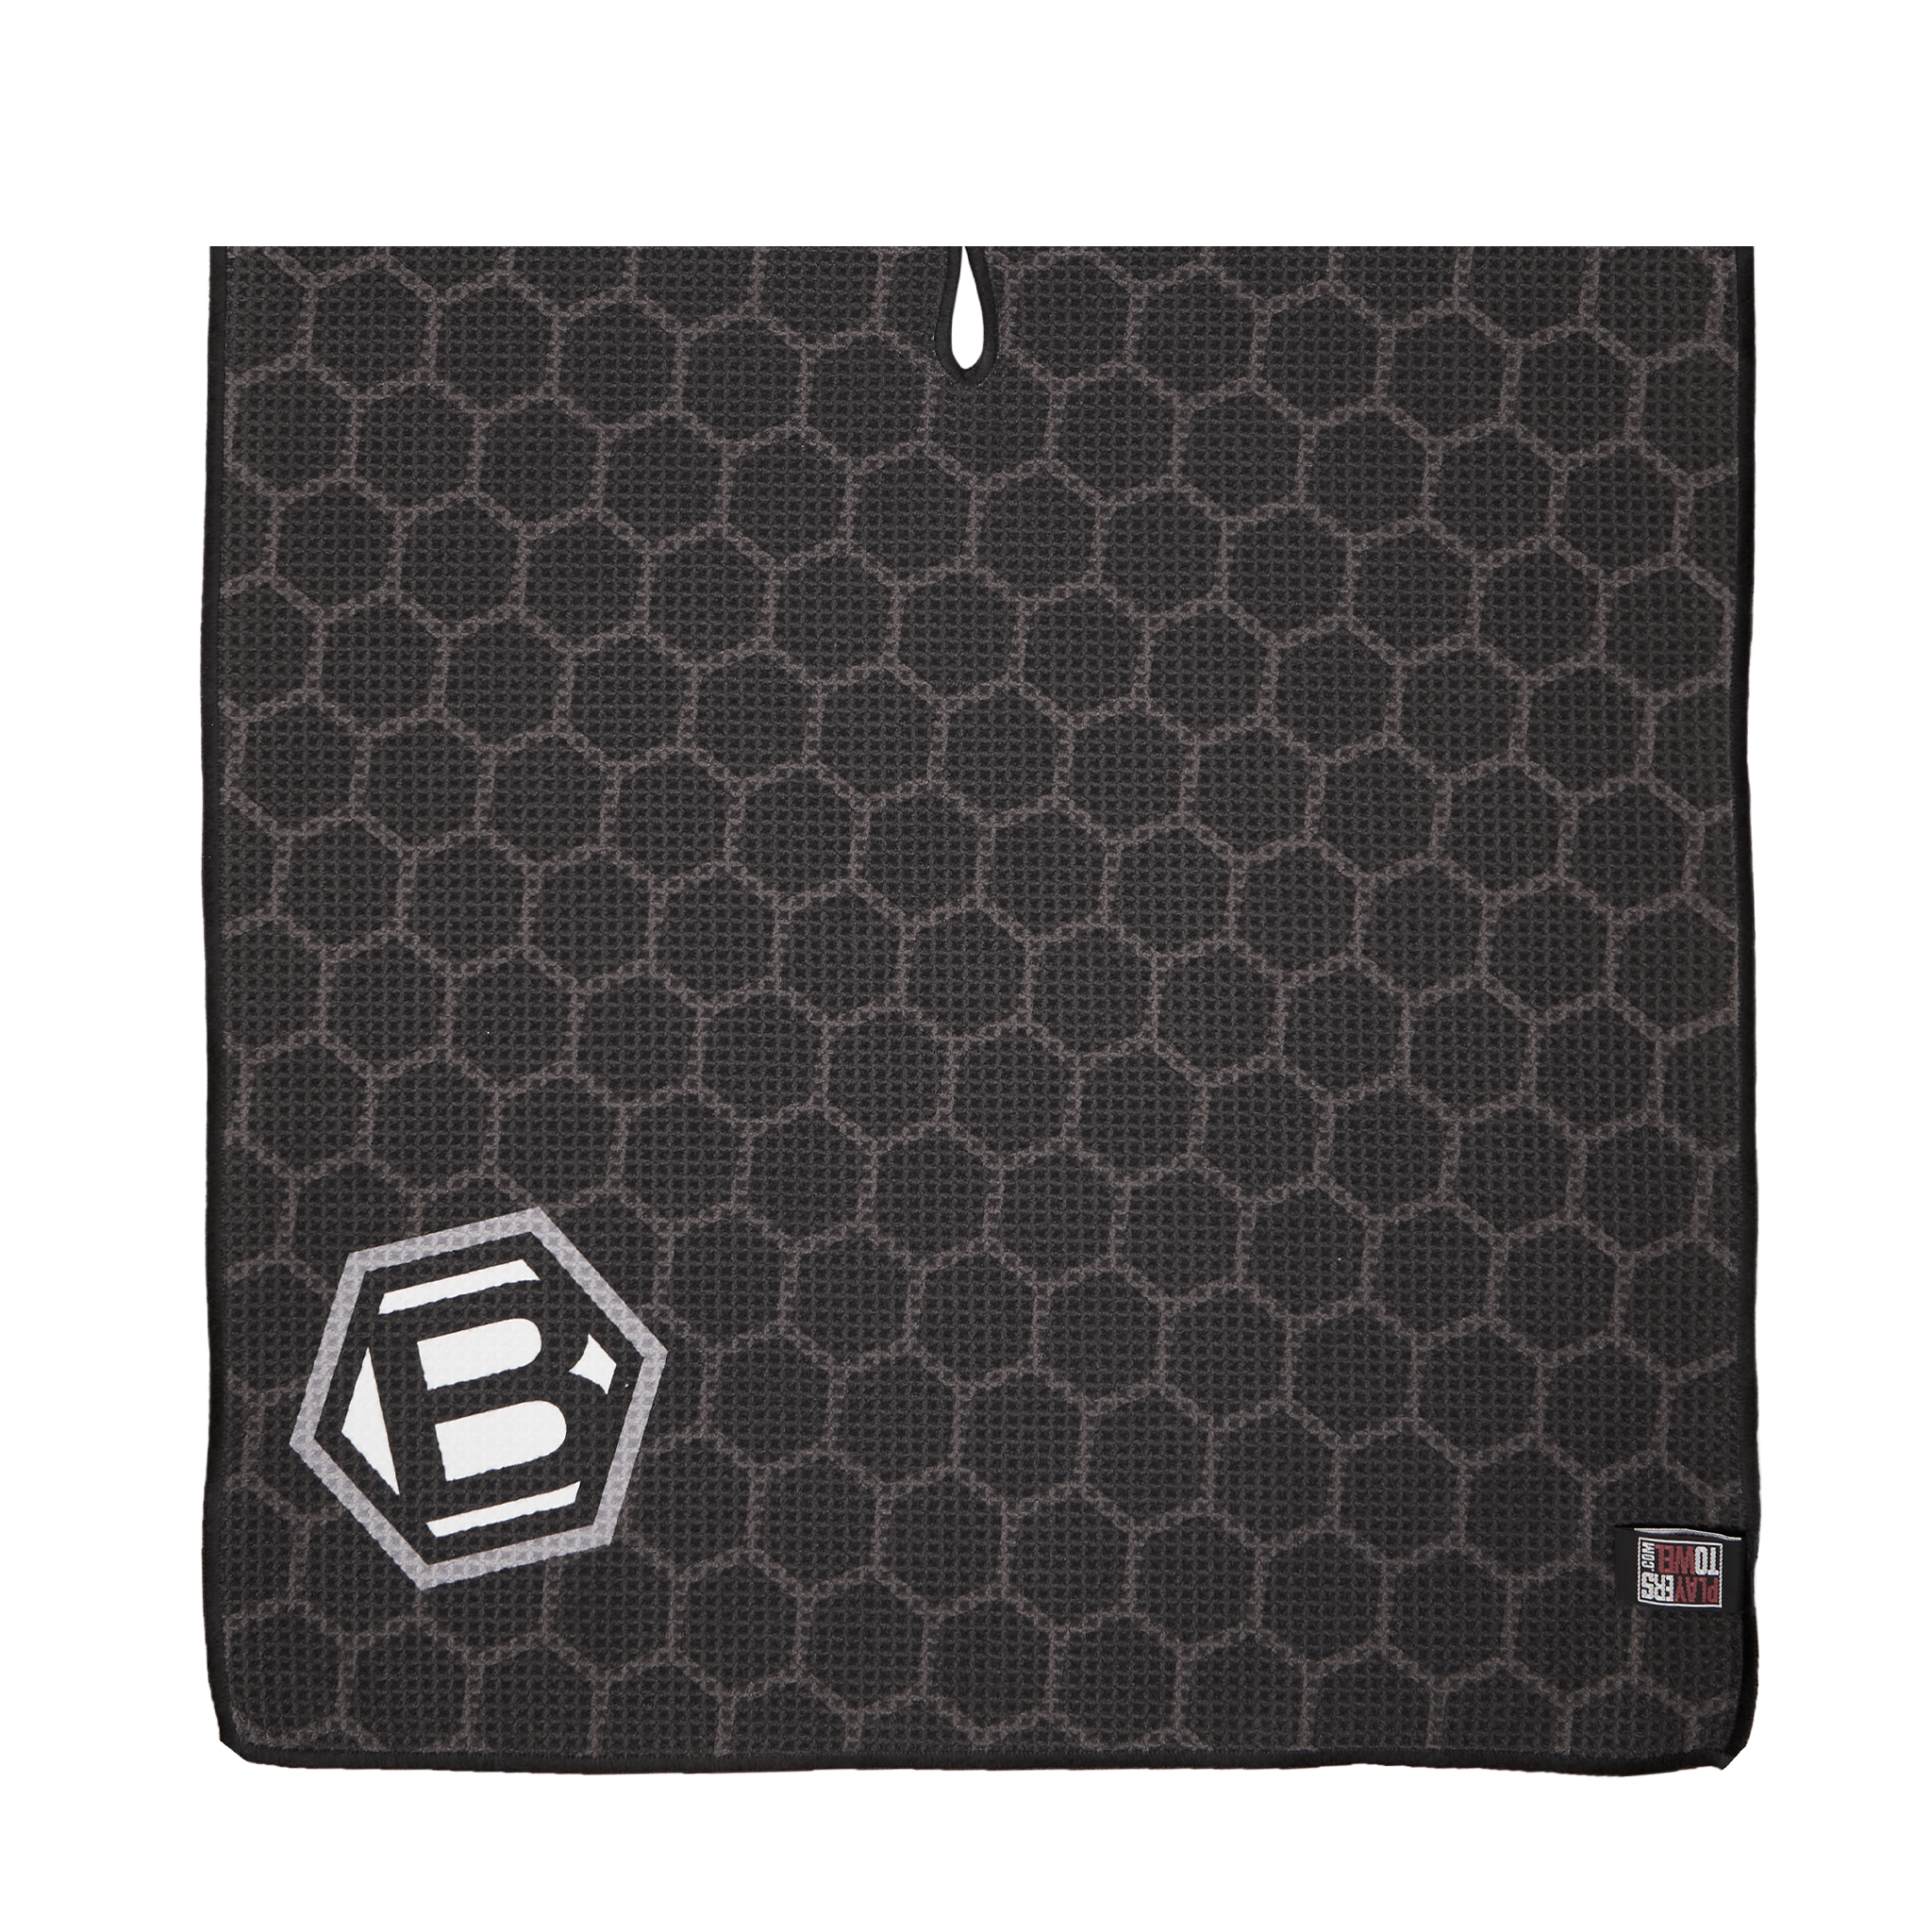 Honeycomb Players Towel (Black/White)